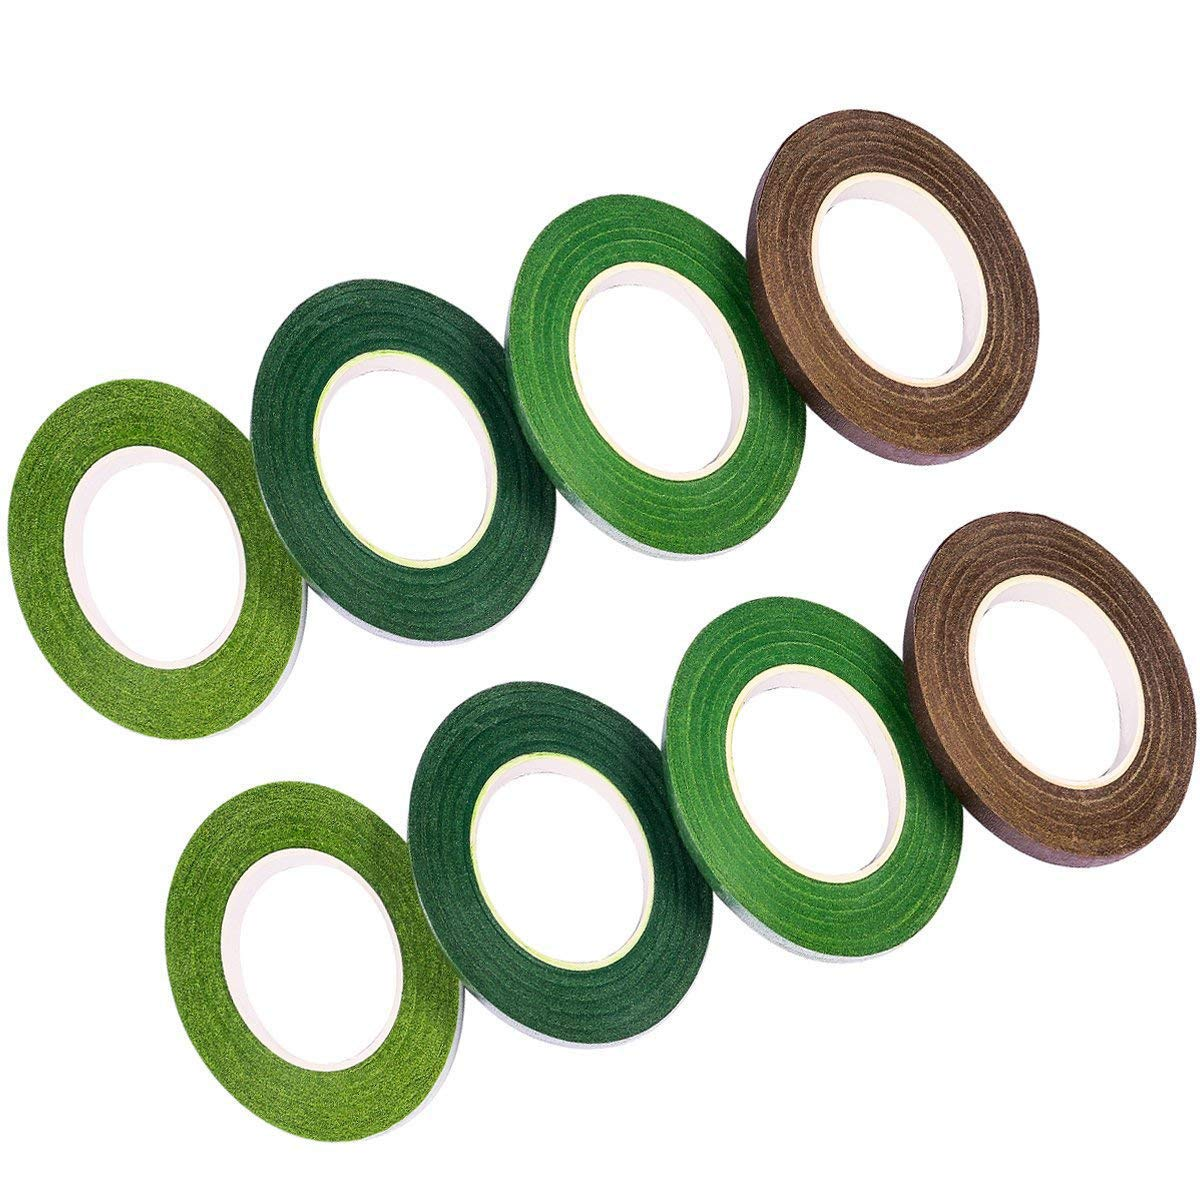 Floral Tapes Green and Brown Color 8 Pack, 240 Yards in Total, 1/2 x 30 Yards each, Stem Wrap Tape For Bouquet Stem Wrap Florist Stem Wrap 1/2 x 30 Yards each AiTrip